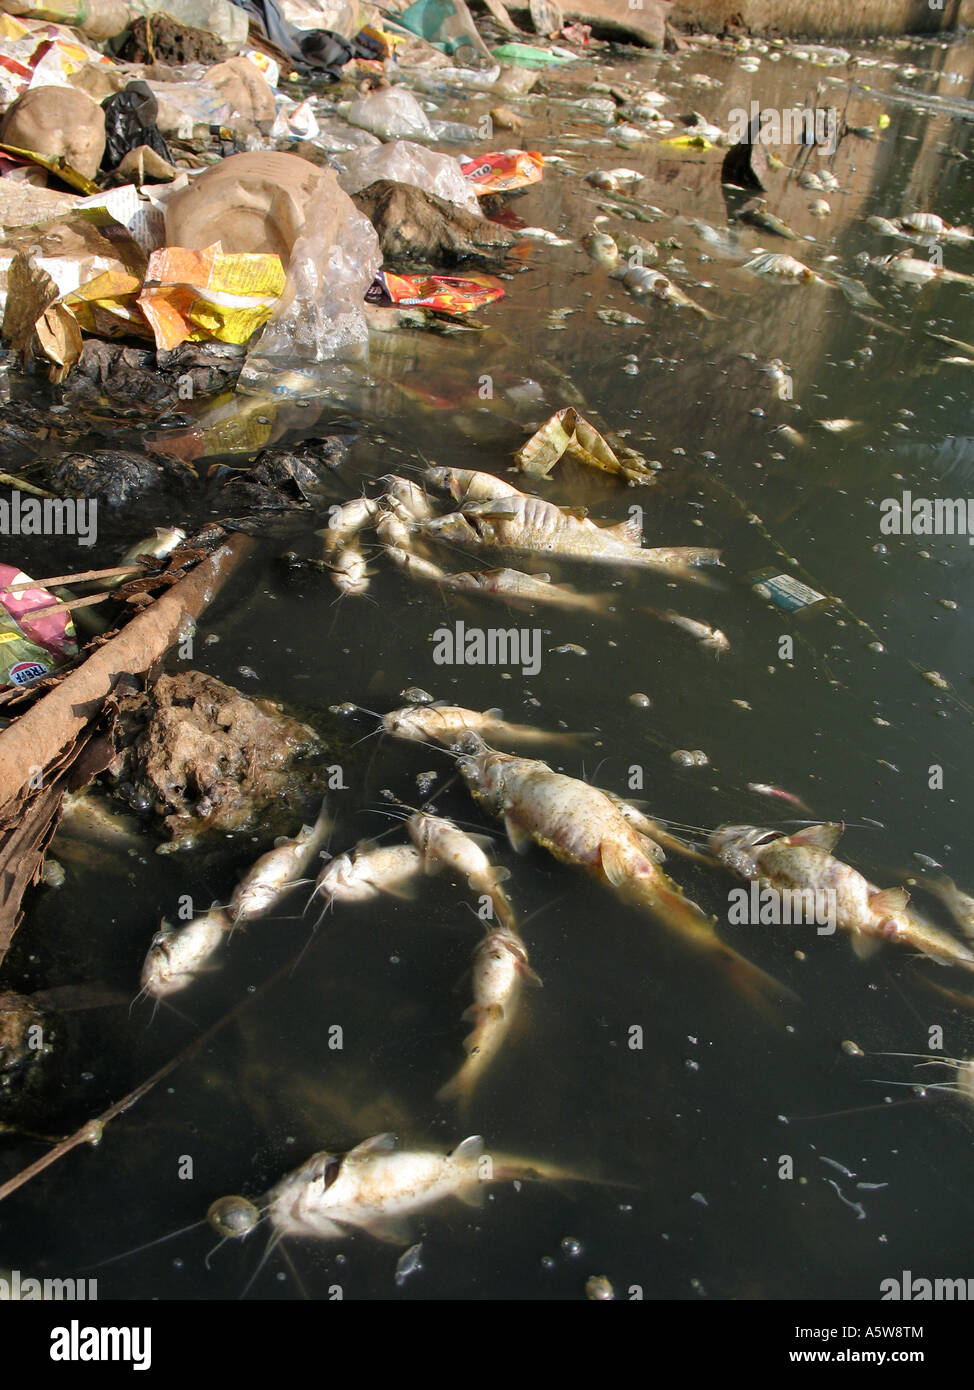 Dead fish floating in a river which has been polluted with rubbish and chemicals - Stock Image